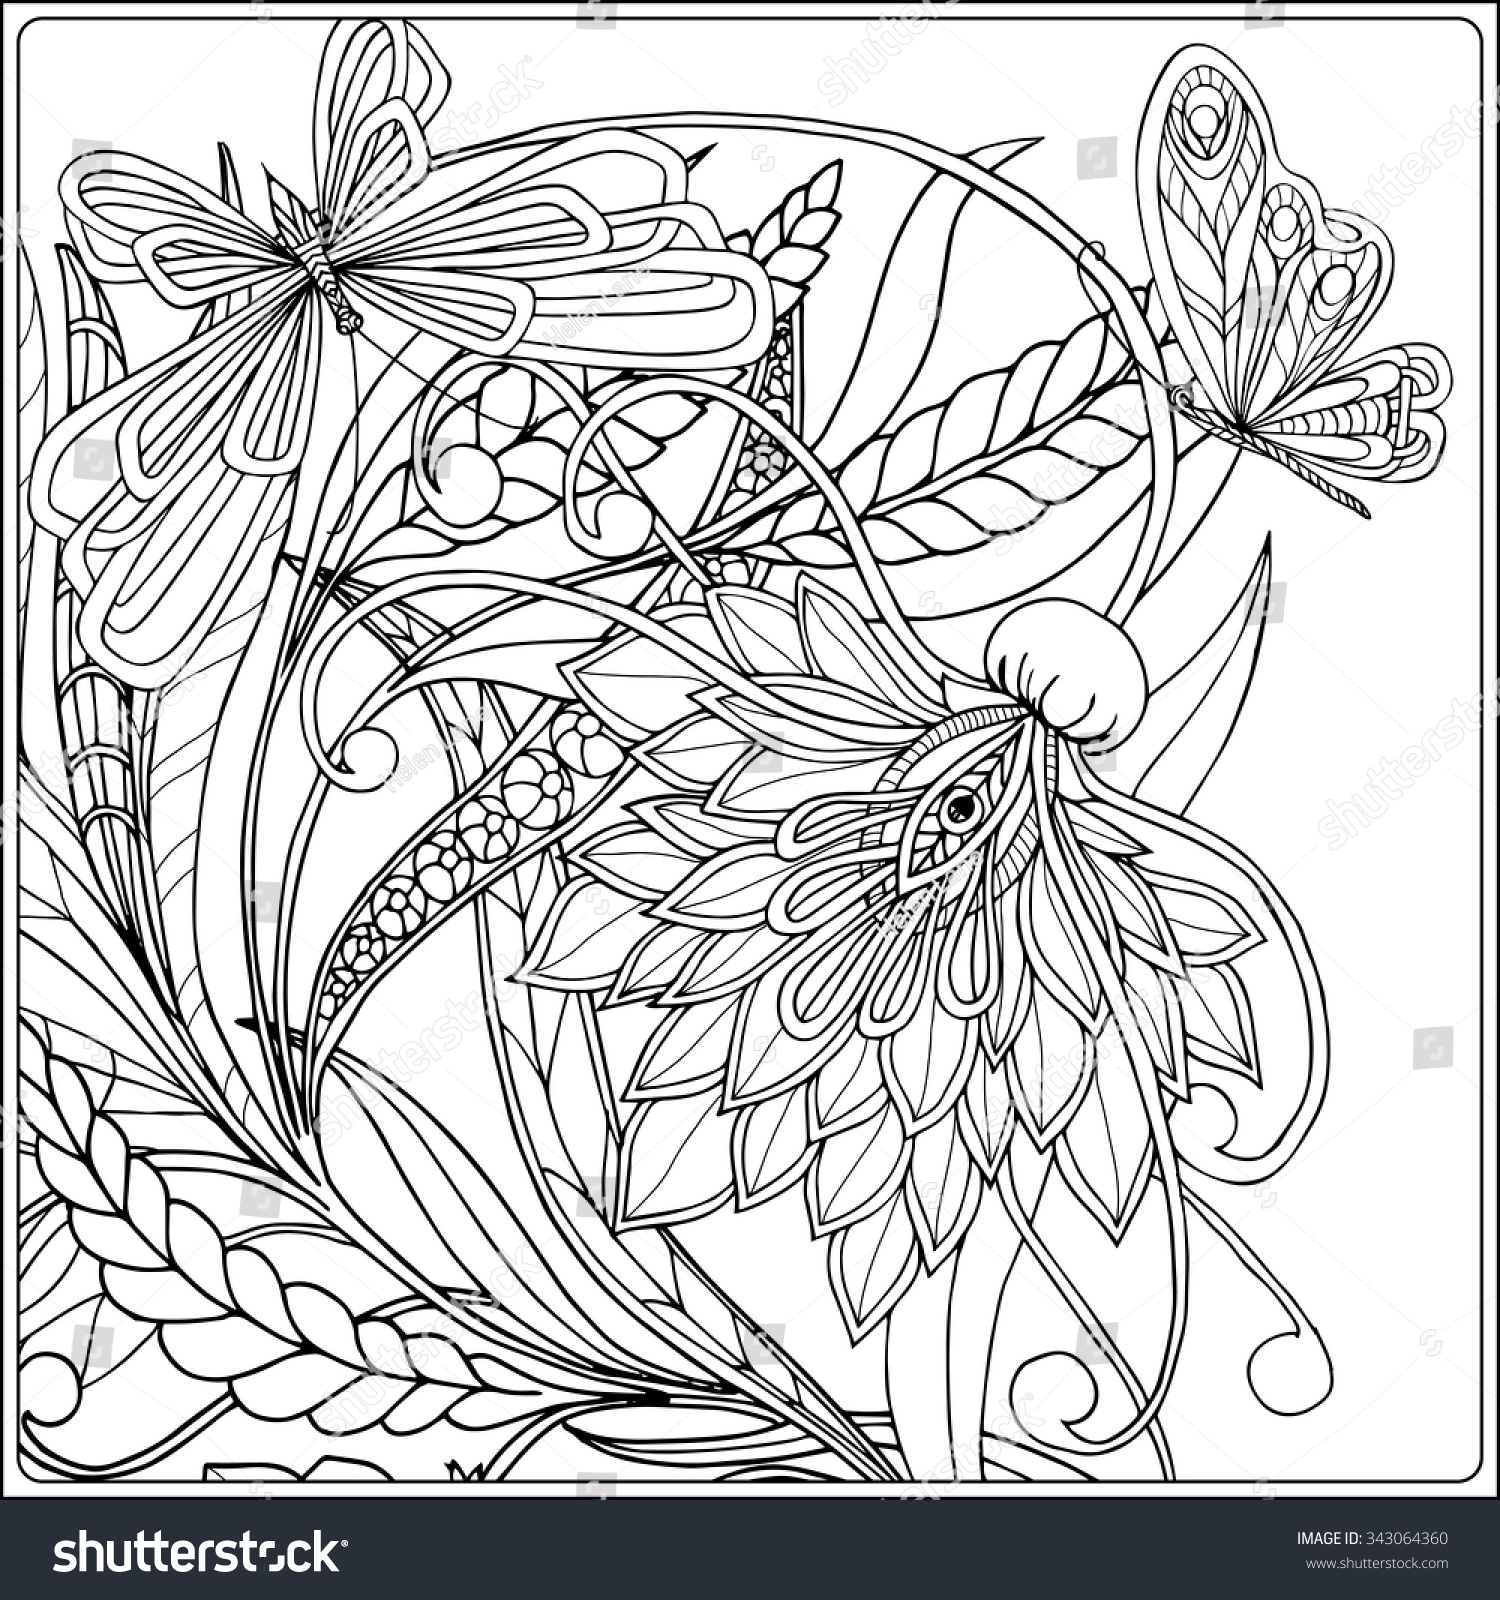 coloring book adult older children coloring stock vector